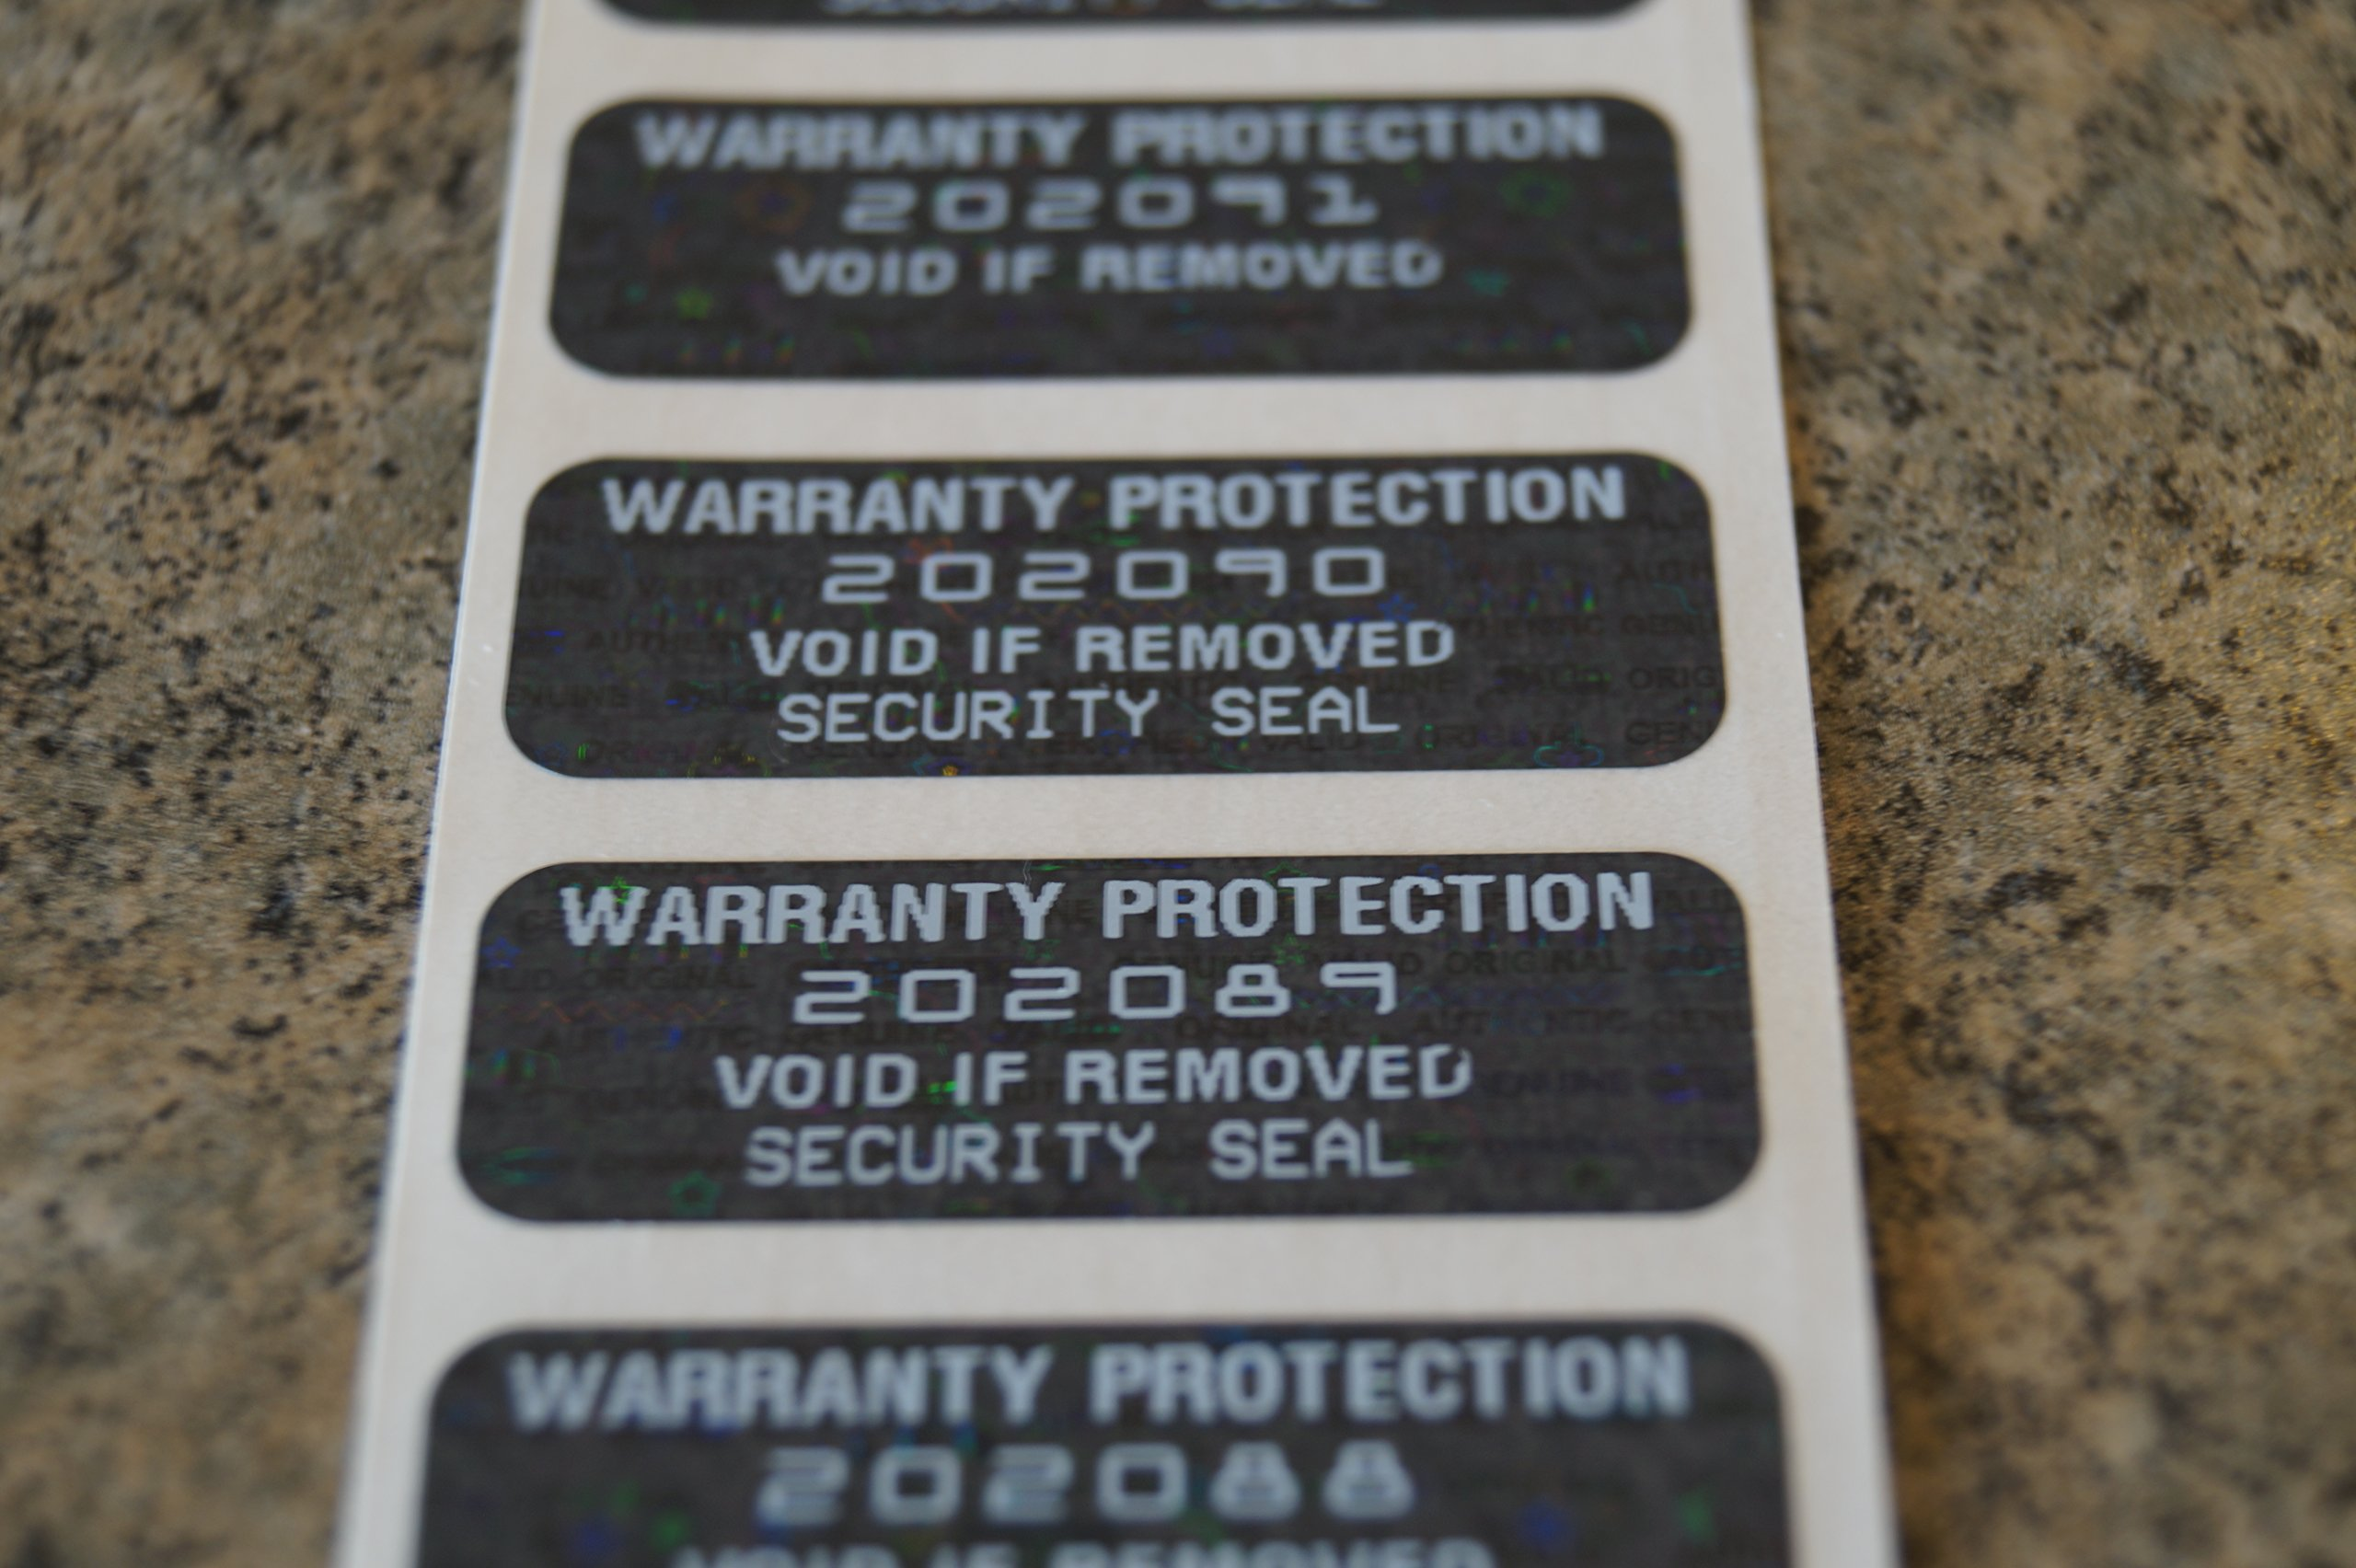 2000 Black Tint Hologram Tamper Evident High Security Labels Stickers (1.5 Inch X .5 Inch)